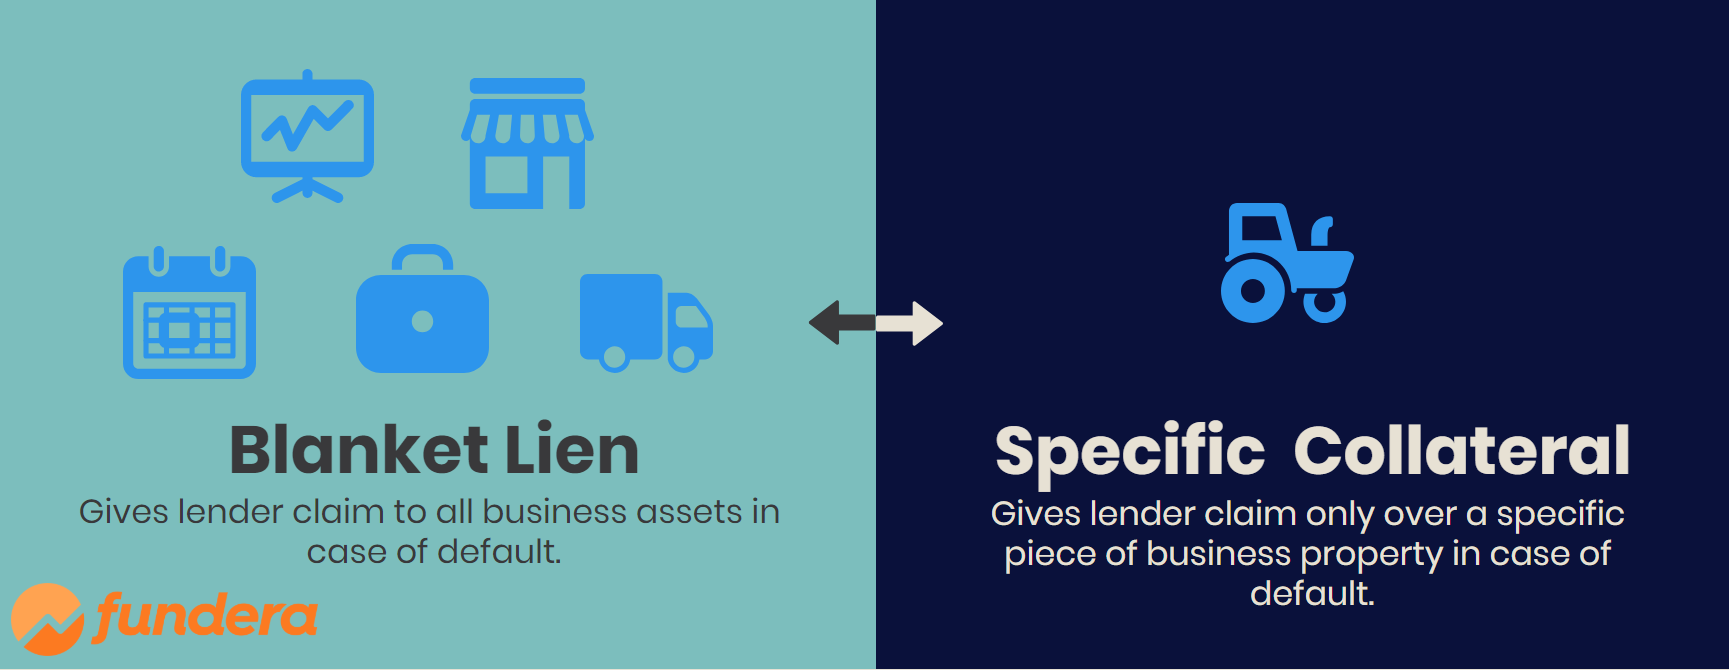 Blanket lien vs specific collateral